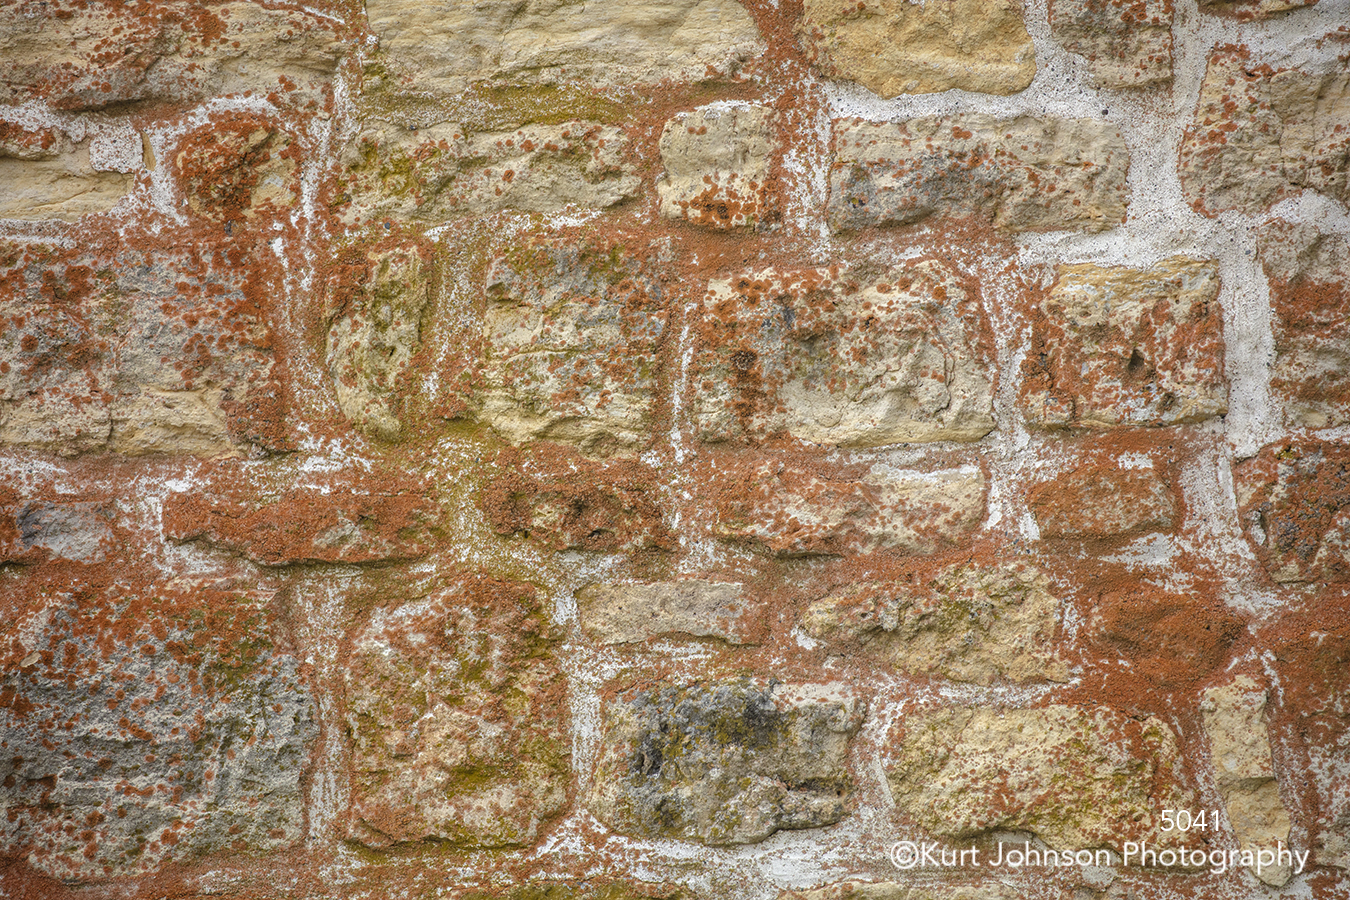 red brown texture pattern brick wall close up detail pattern rock stone